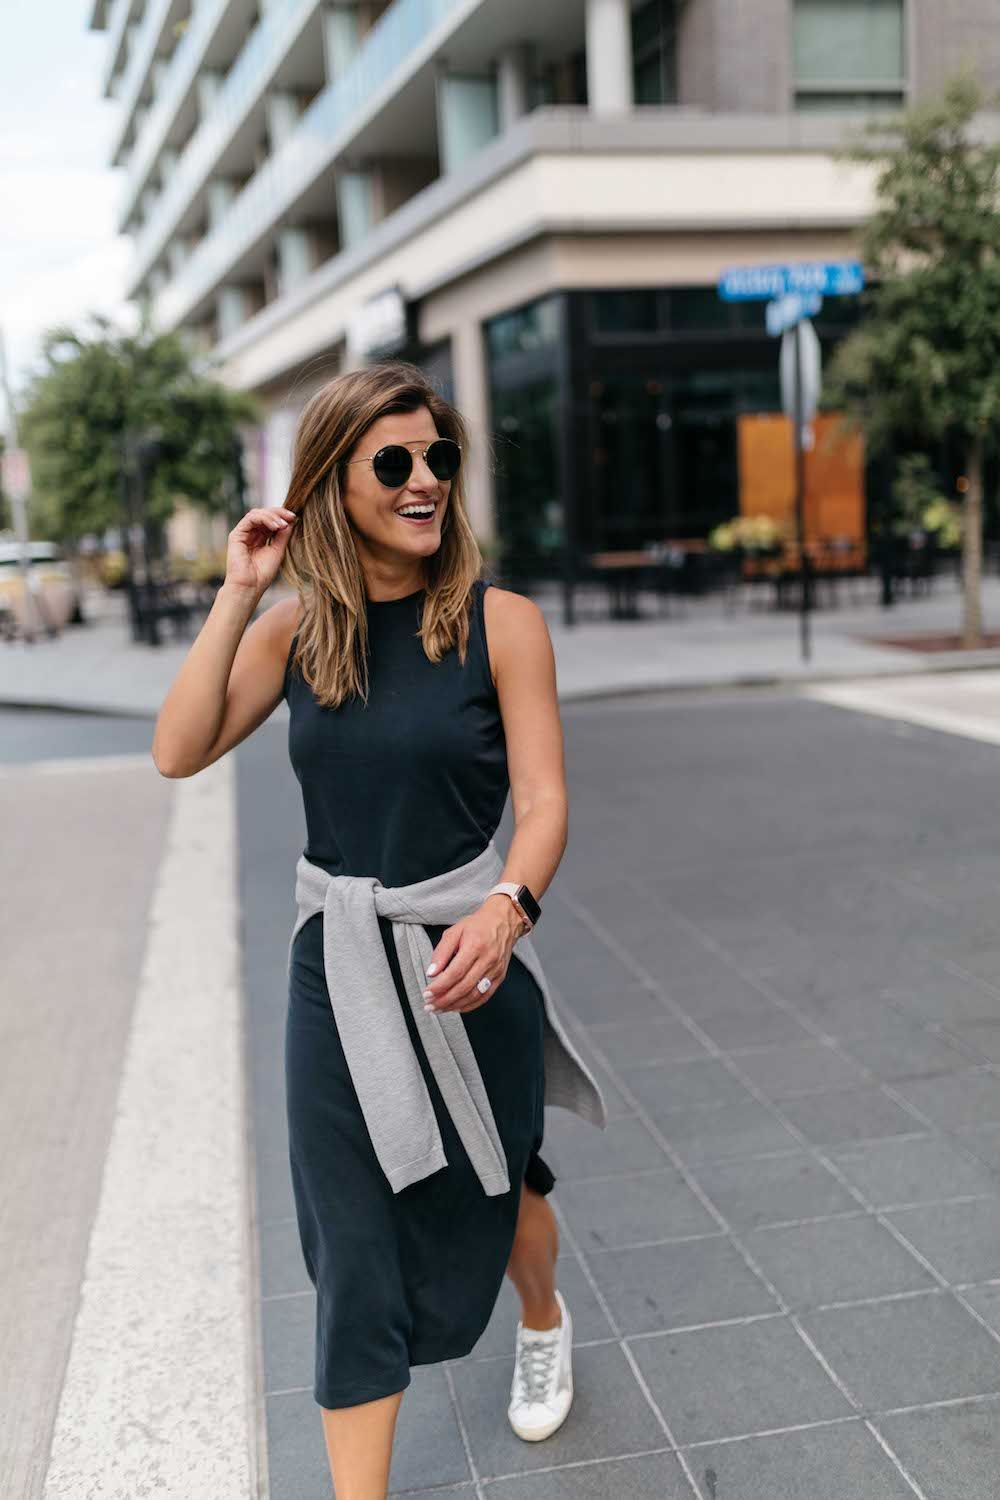 Pin on Summer Outfit Ideas